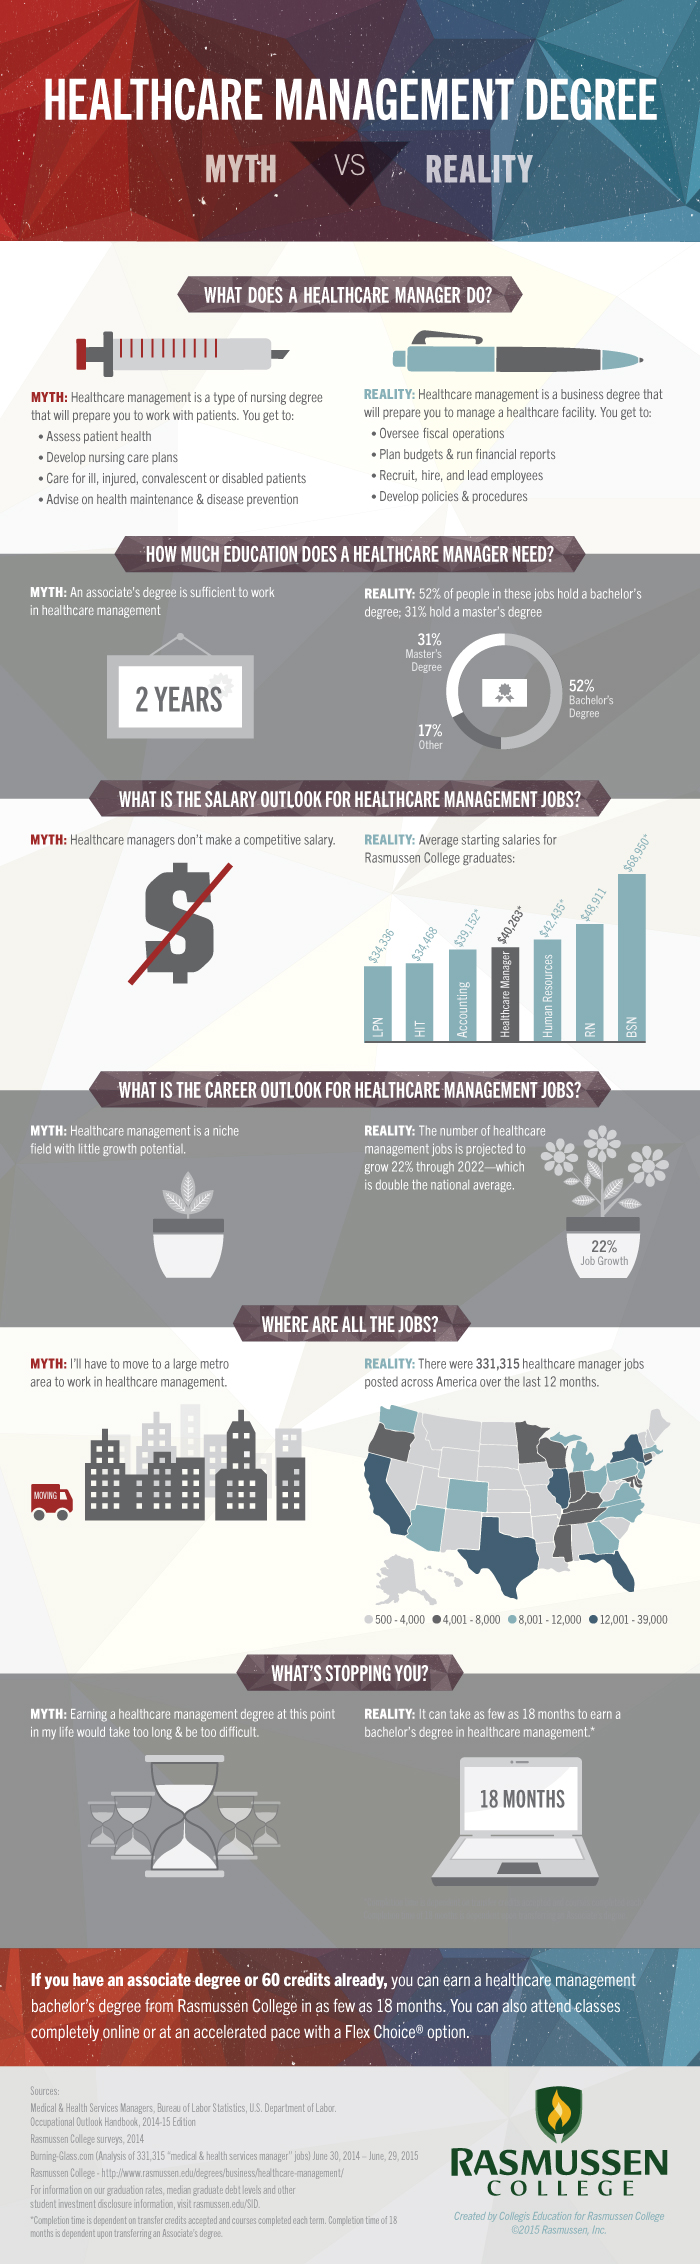 Healthcare Management Degree: Myth vs. Reality [Infographic]